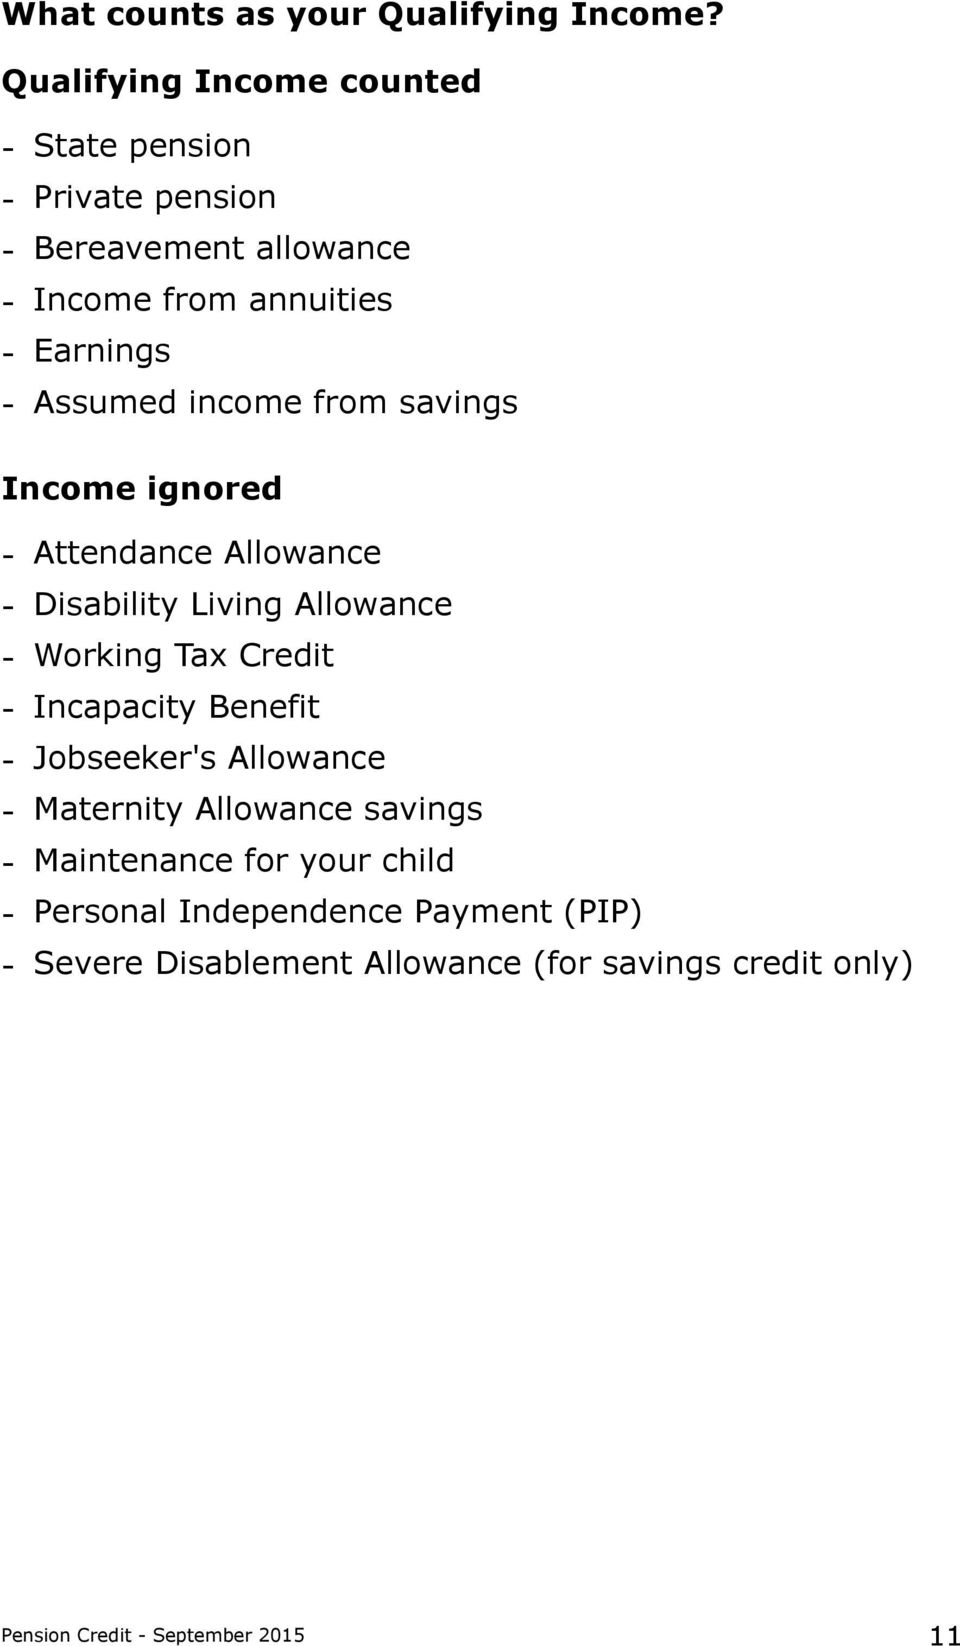 Assumed income from savings Income ignored - Attendance Allowance - Disability Living Allowance - Working Tax Credit -